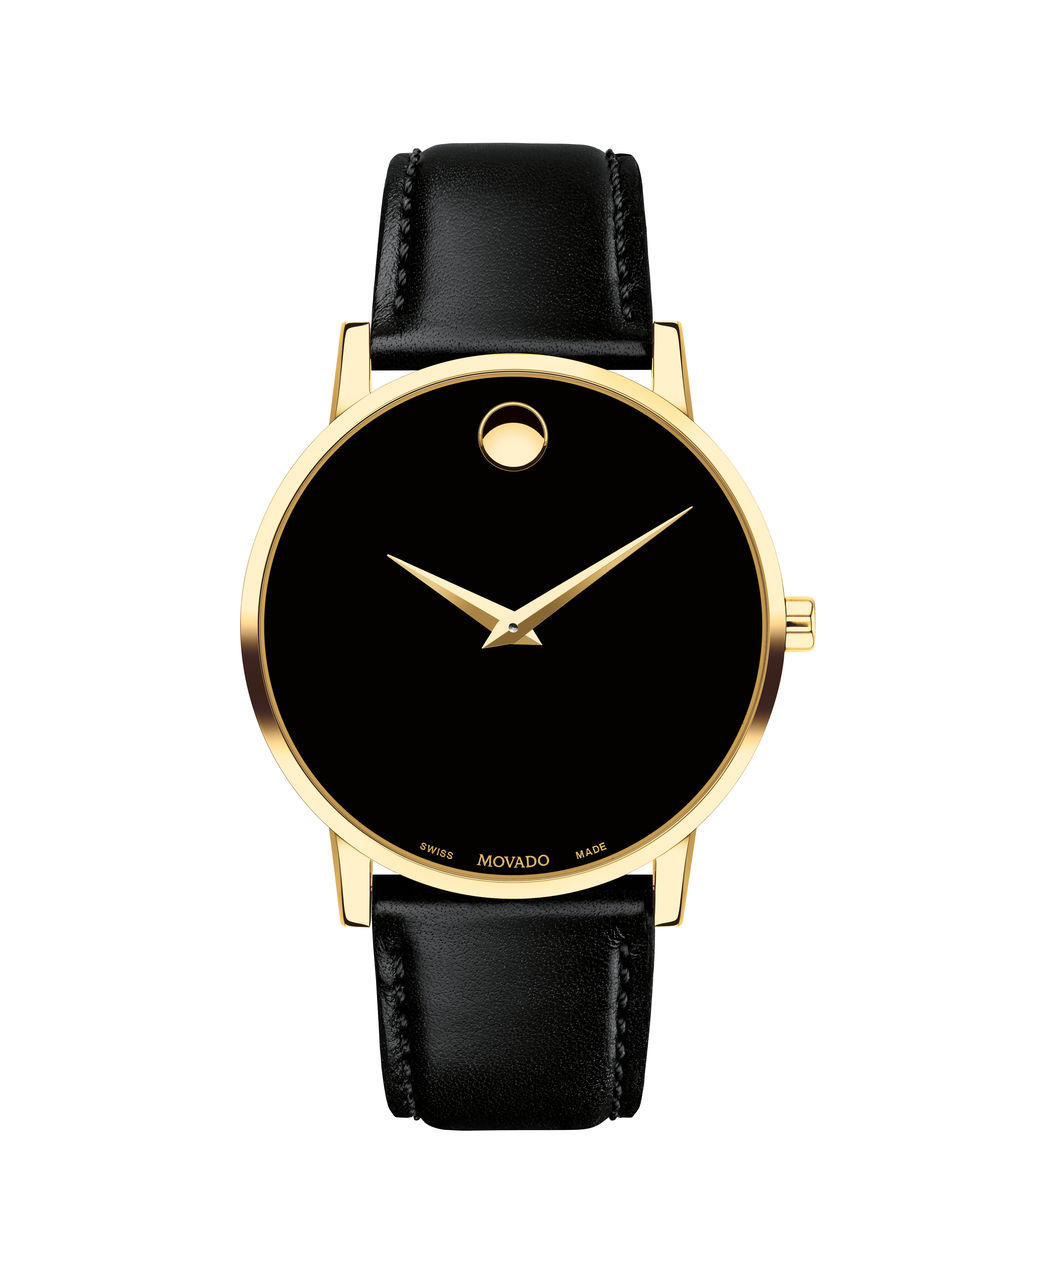 fff4759083d New Movado men s Museum classic 40mm 0607271 and 50 similar items. 0607271w  lrg rgb web